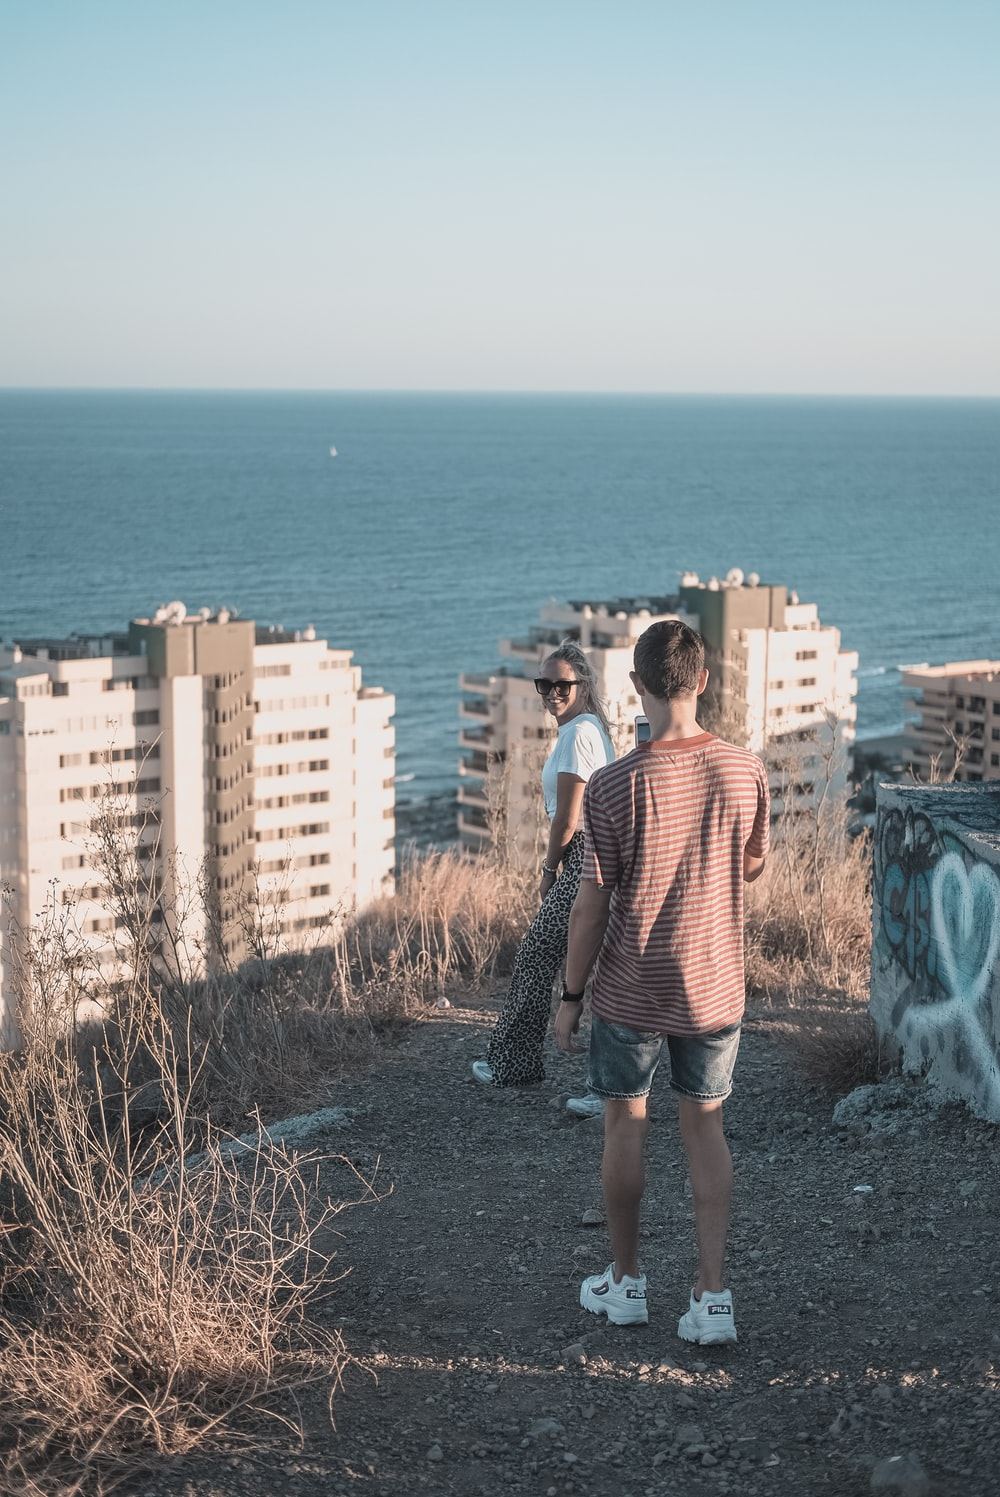 man takes photo of woman in white shirt near building overlooking sea